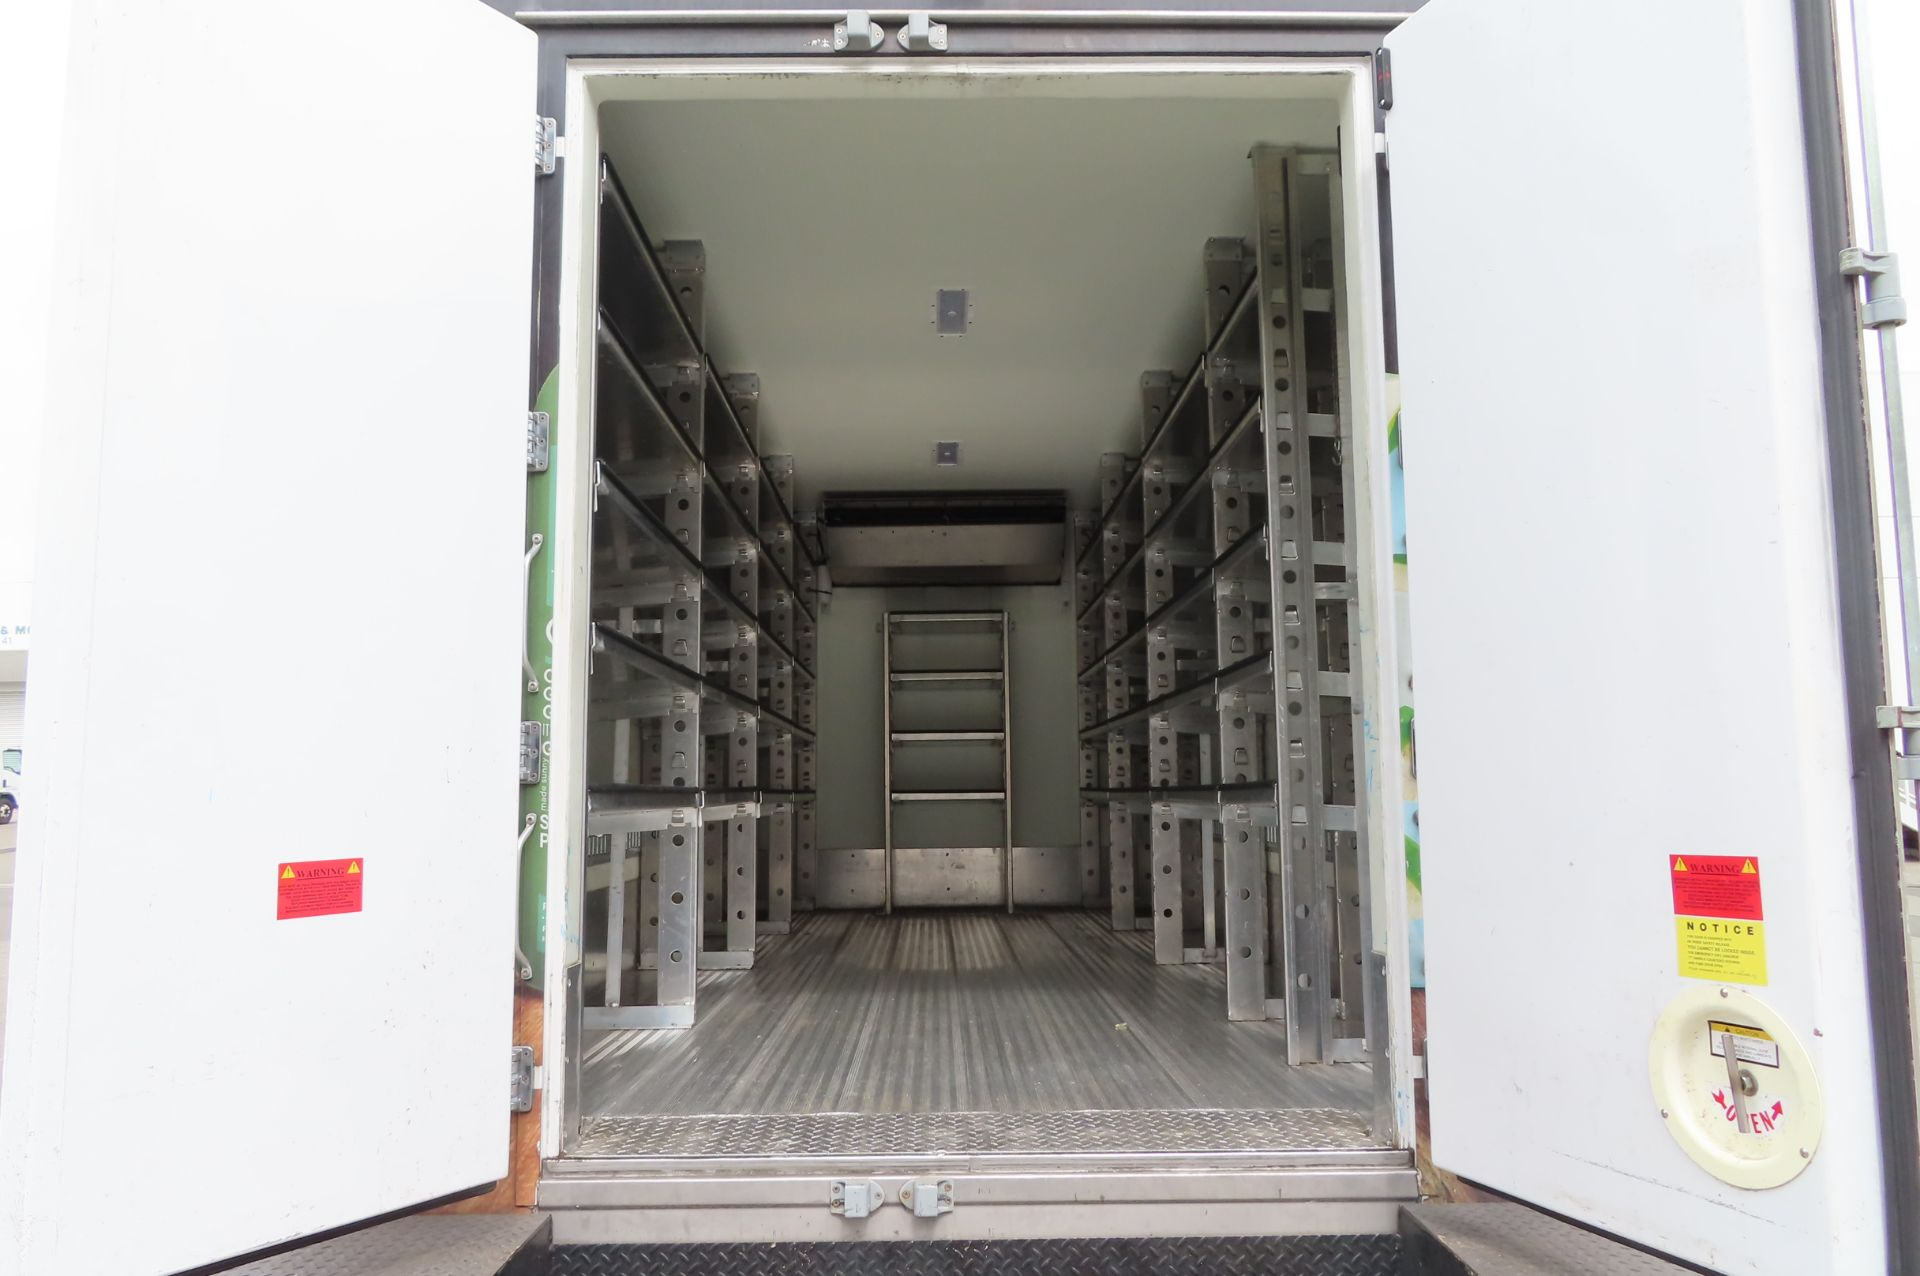 2019 Isuzu refrigerated truck - Image 5 of 9